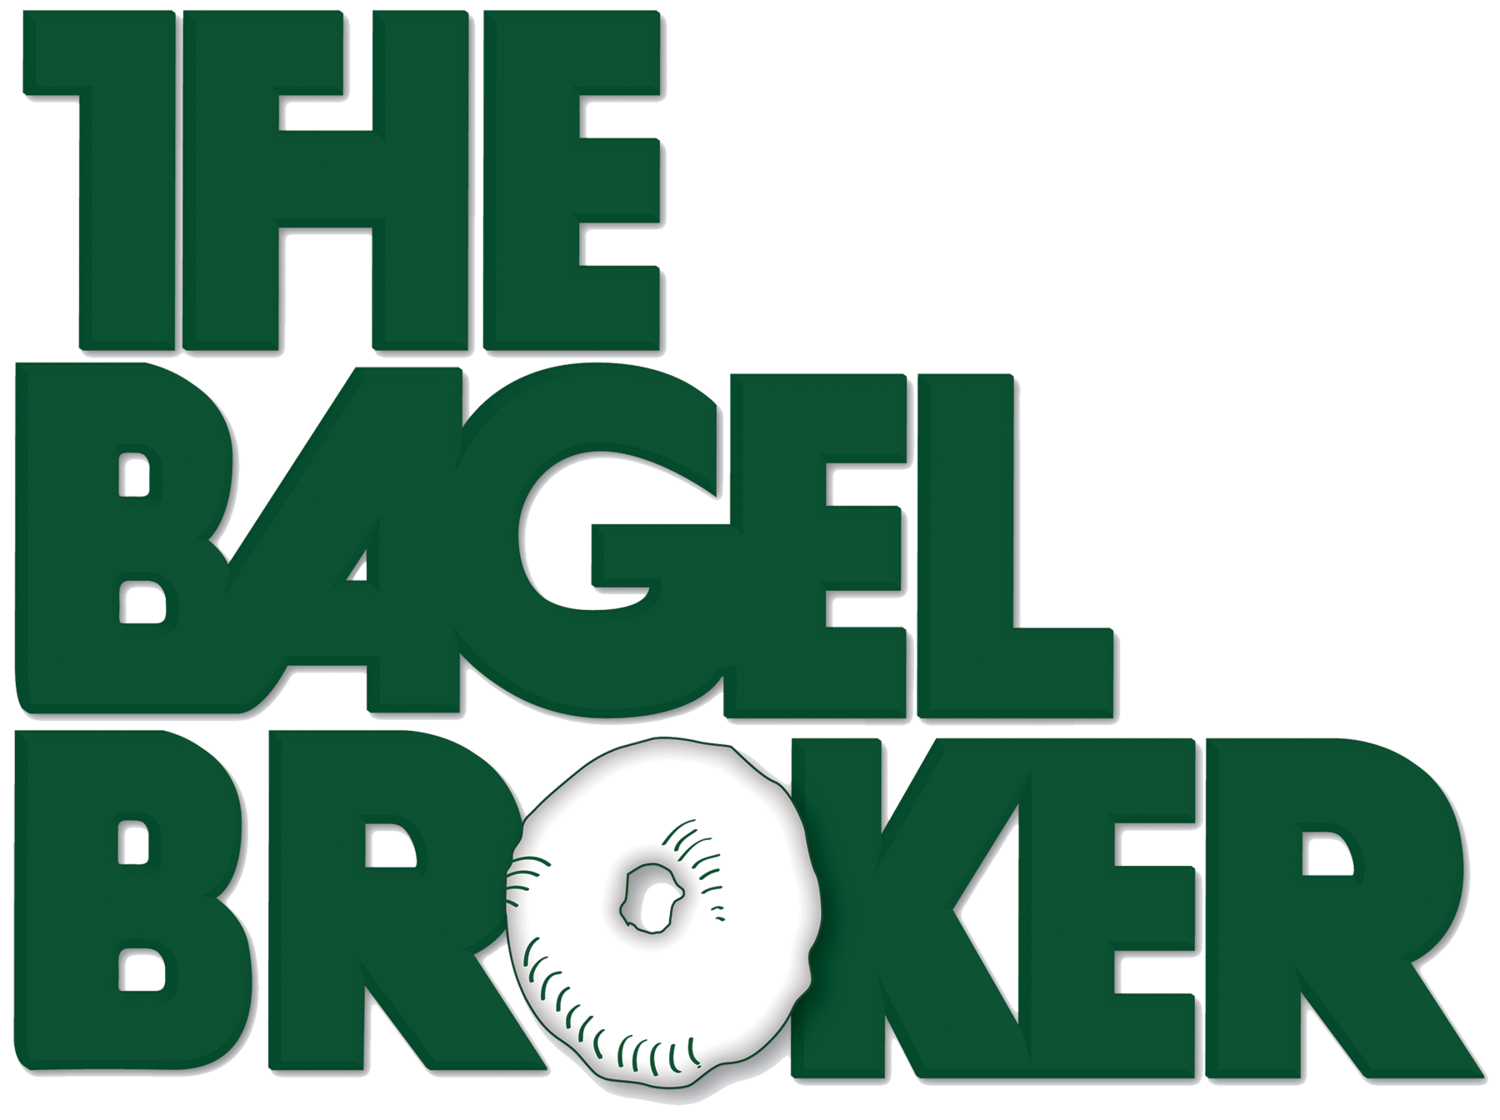 The Bagel Broker